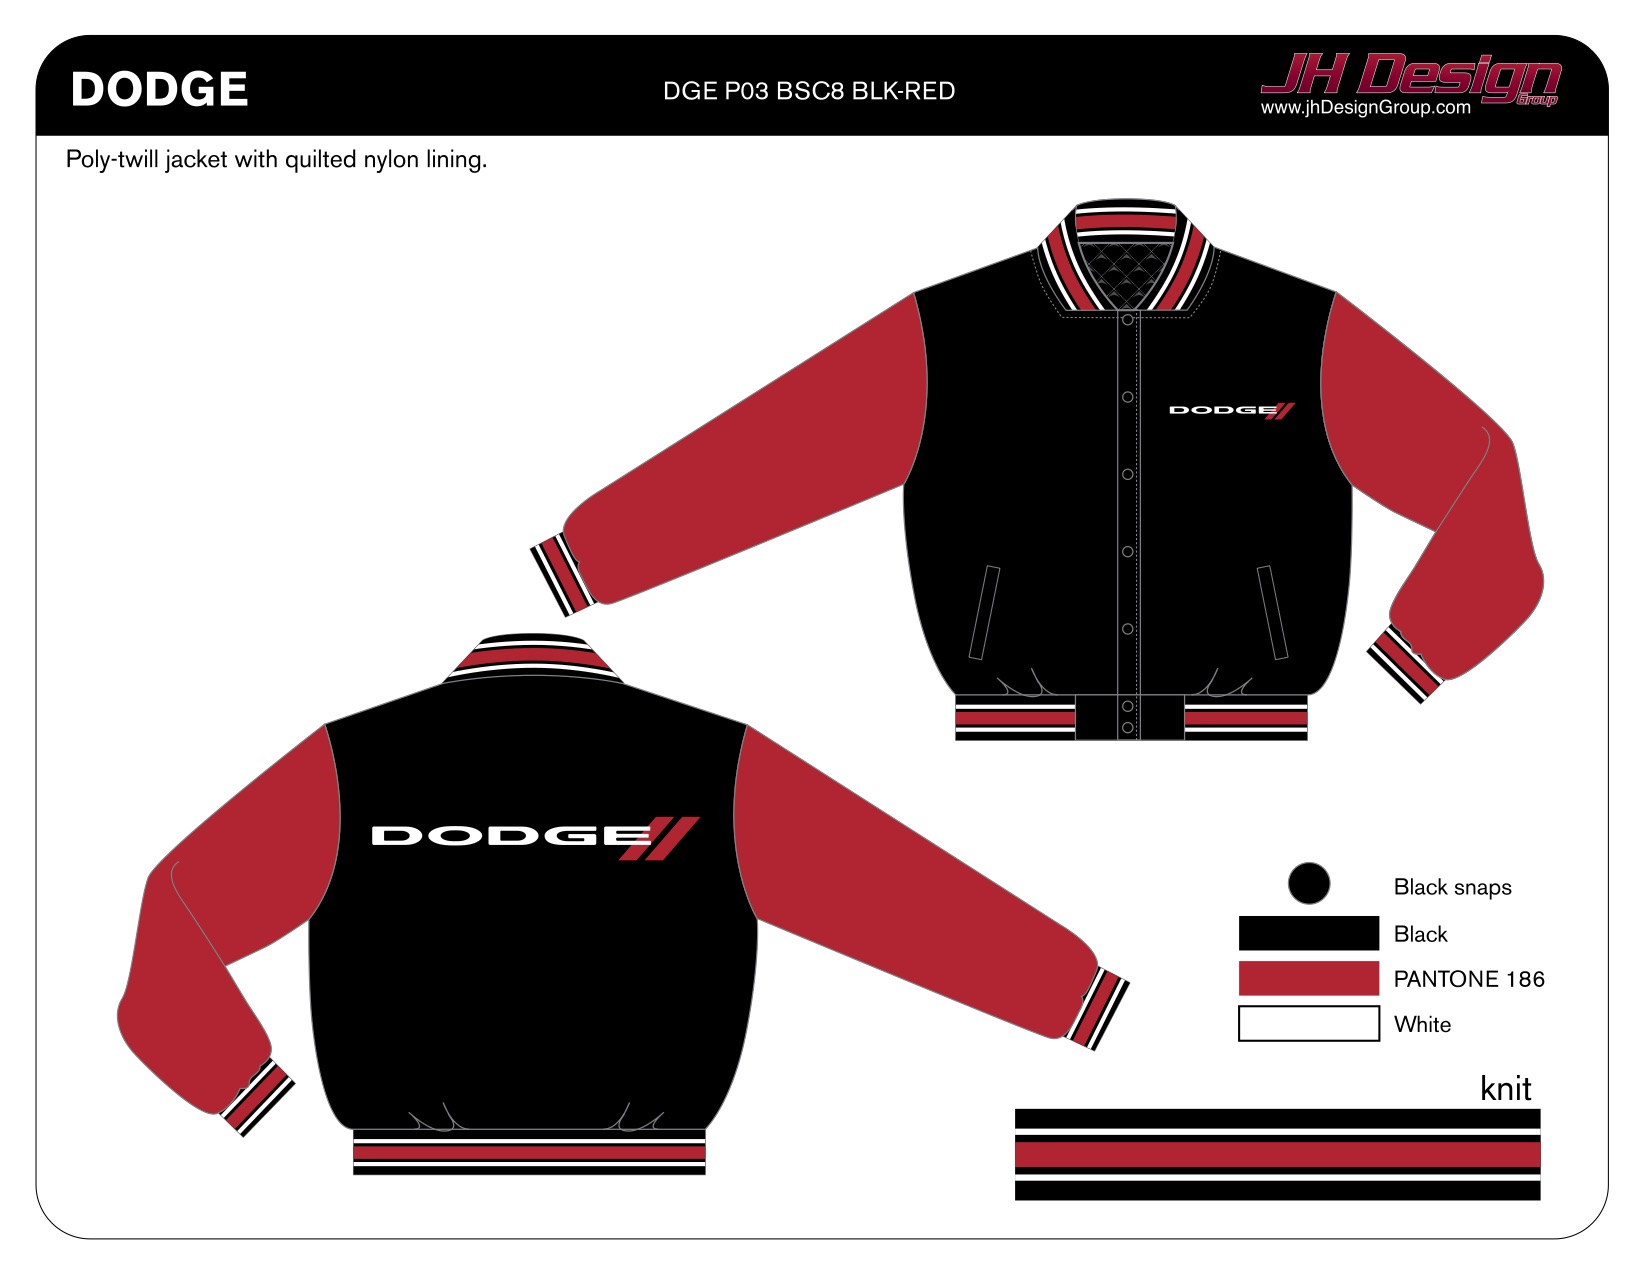 DGE P03 BSC8 BLK-RED